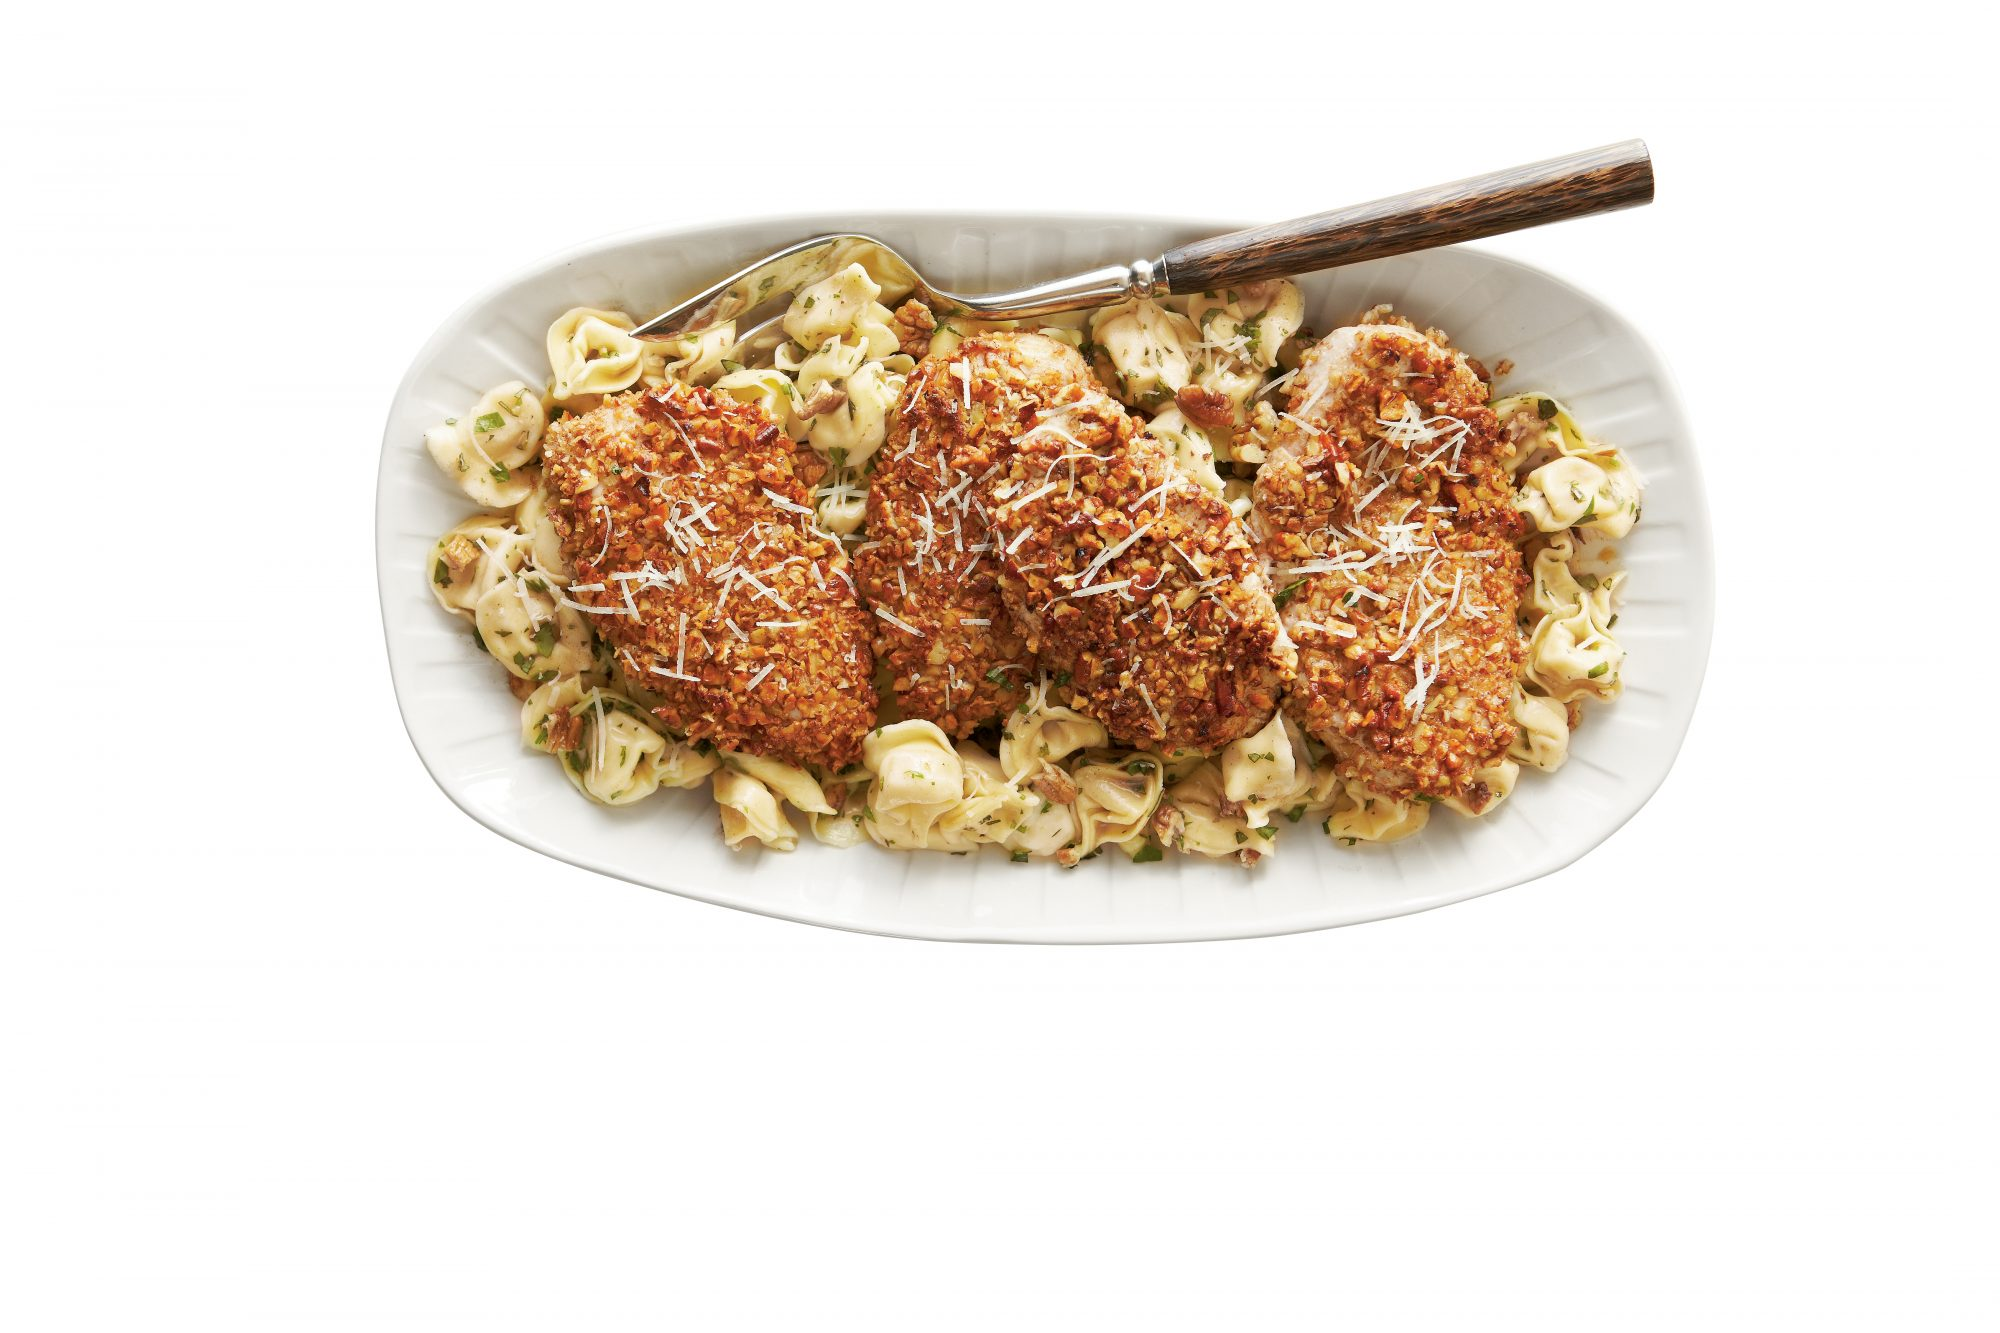 Pecan-Crusted Chicken and Tortellini with Herbed Butter Sauce